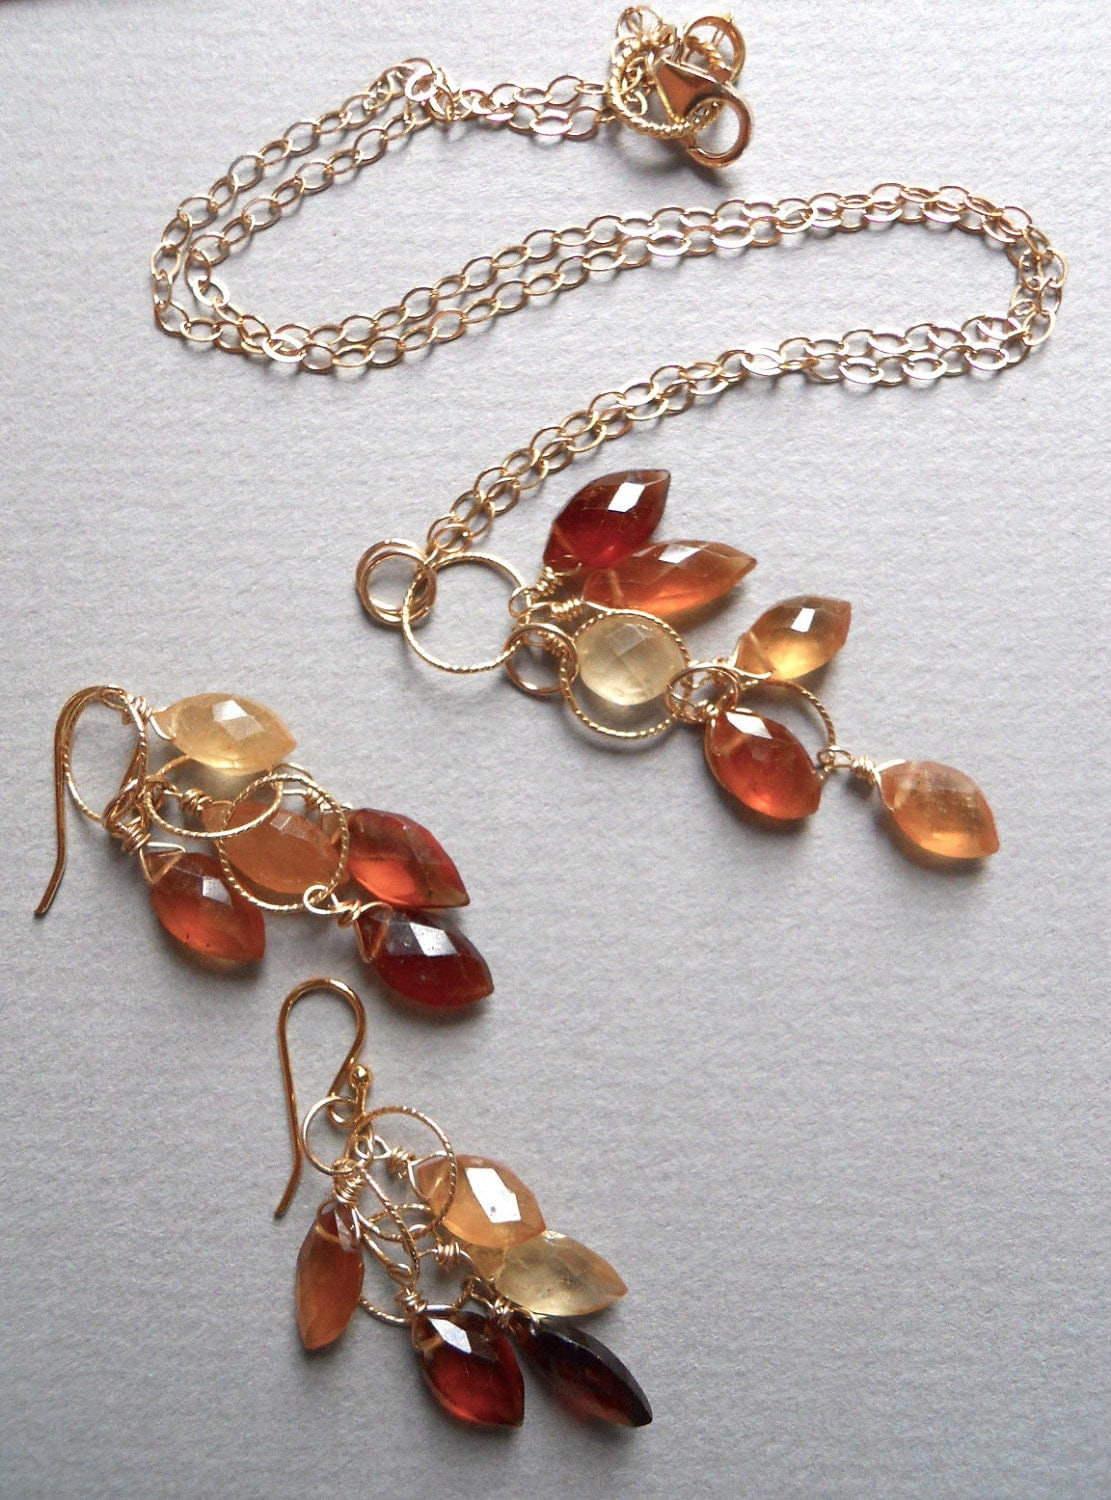 SET: Falling Leaves Hessonite Garnet Necklace AND Earrings - $140.00 USD